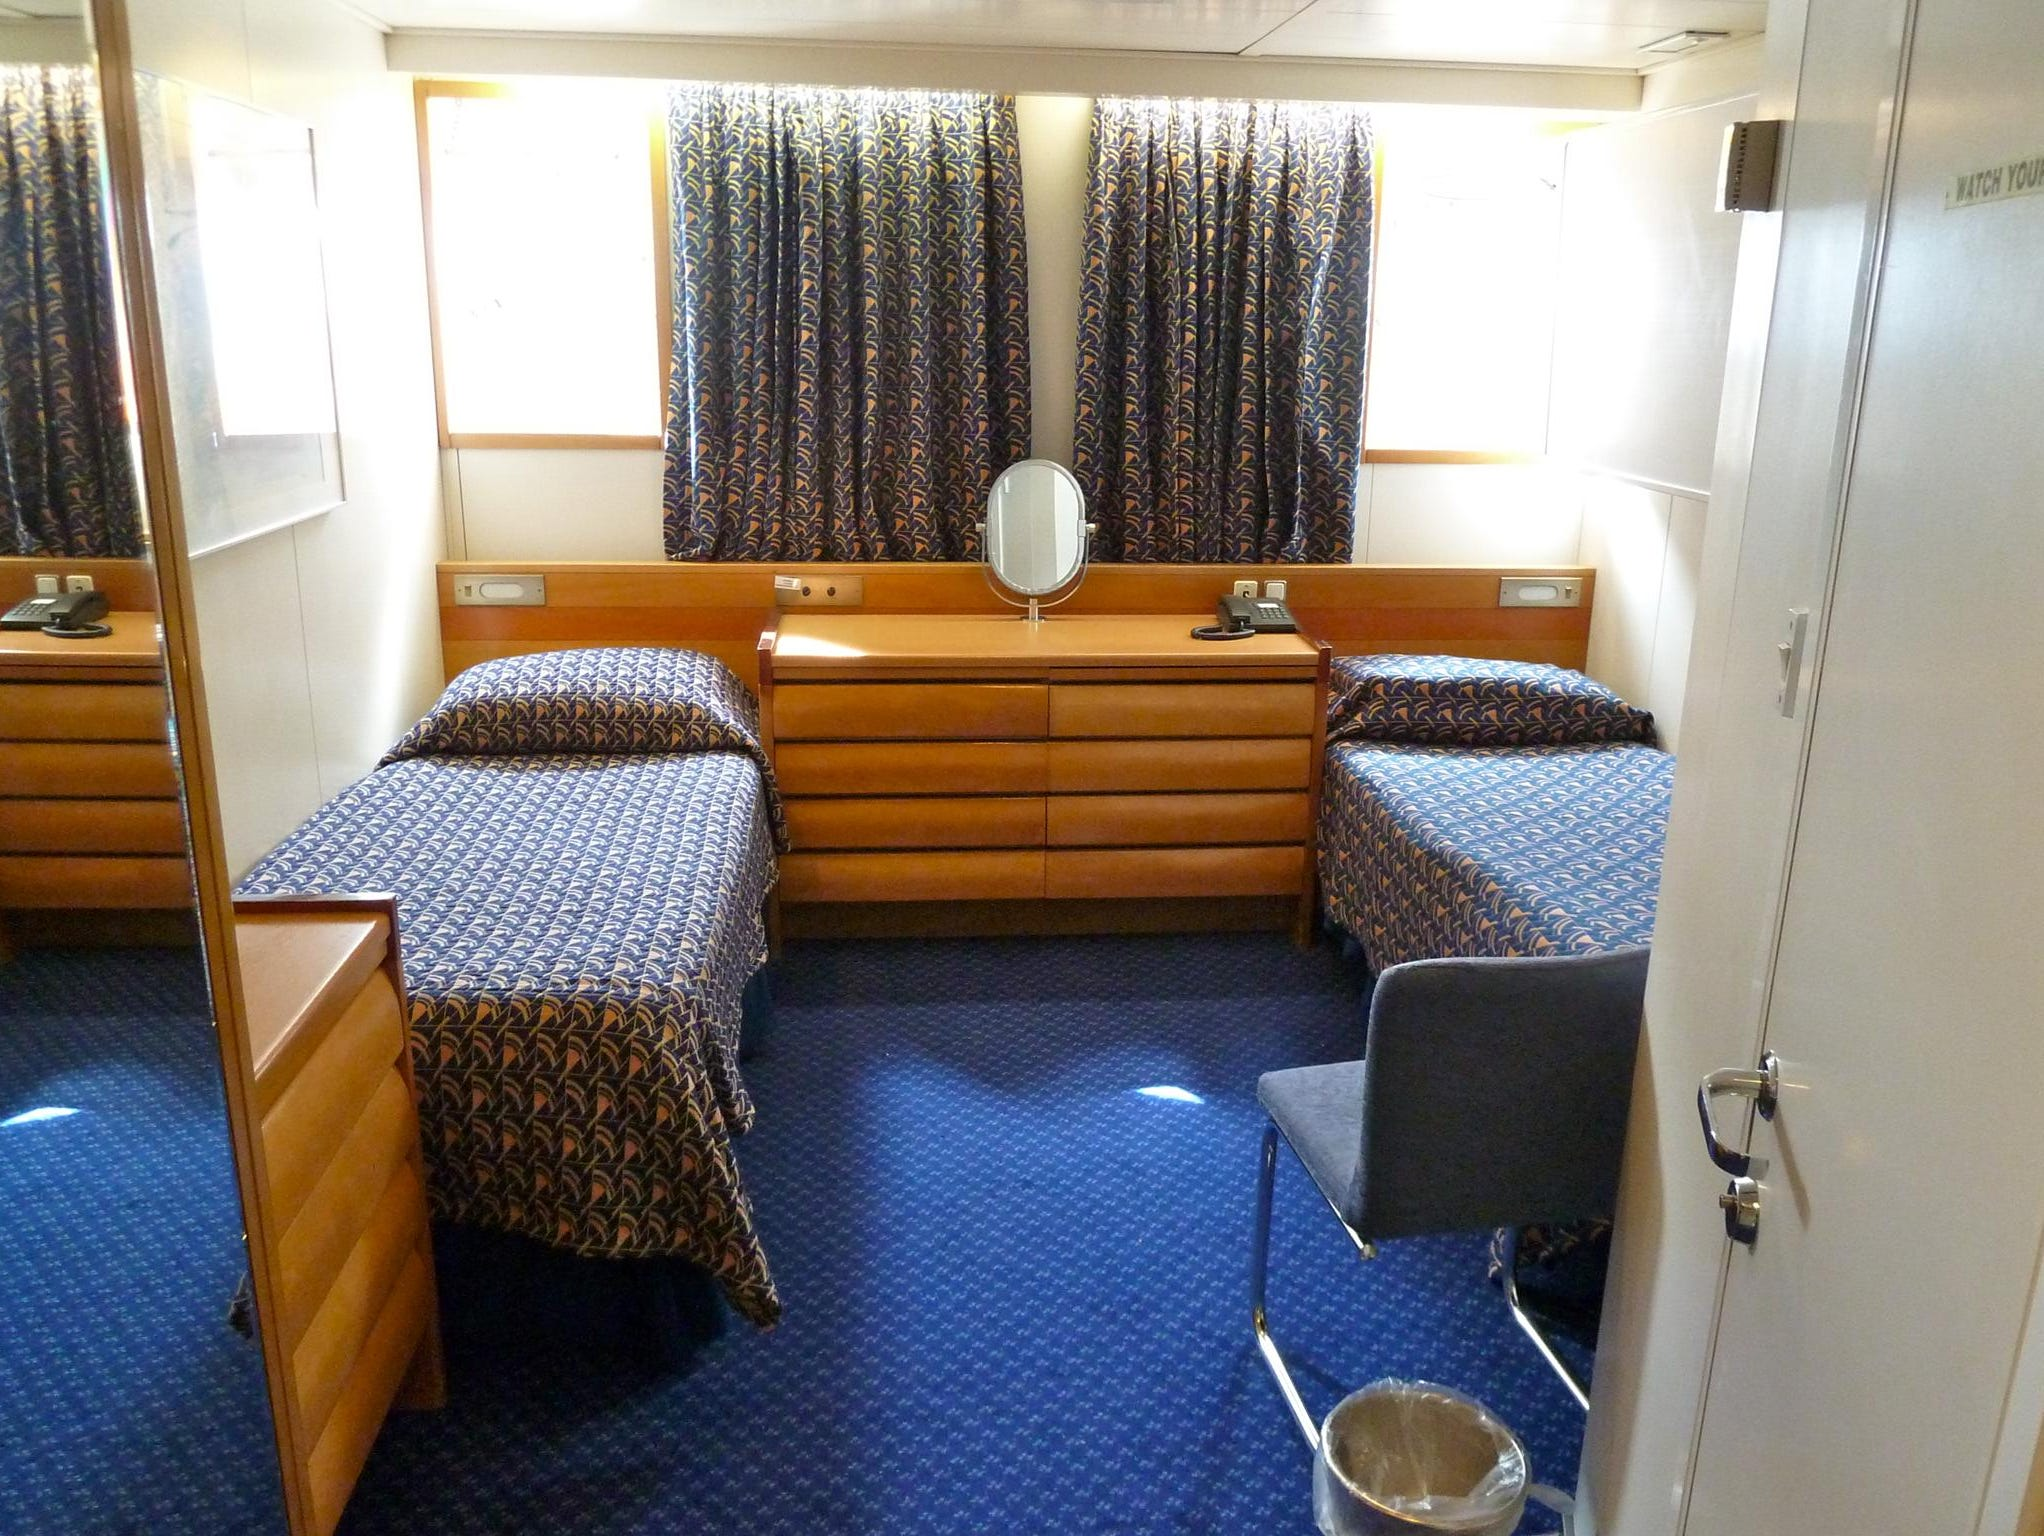 Category 8 Standard Plus Twin Cabins measure on average 141-square-feet and have one or two picture windows or portholes. Some are equipped with a third berth.